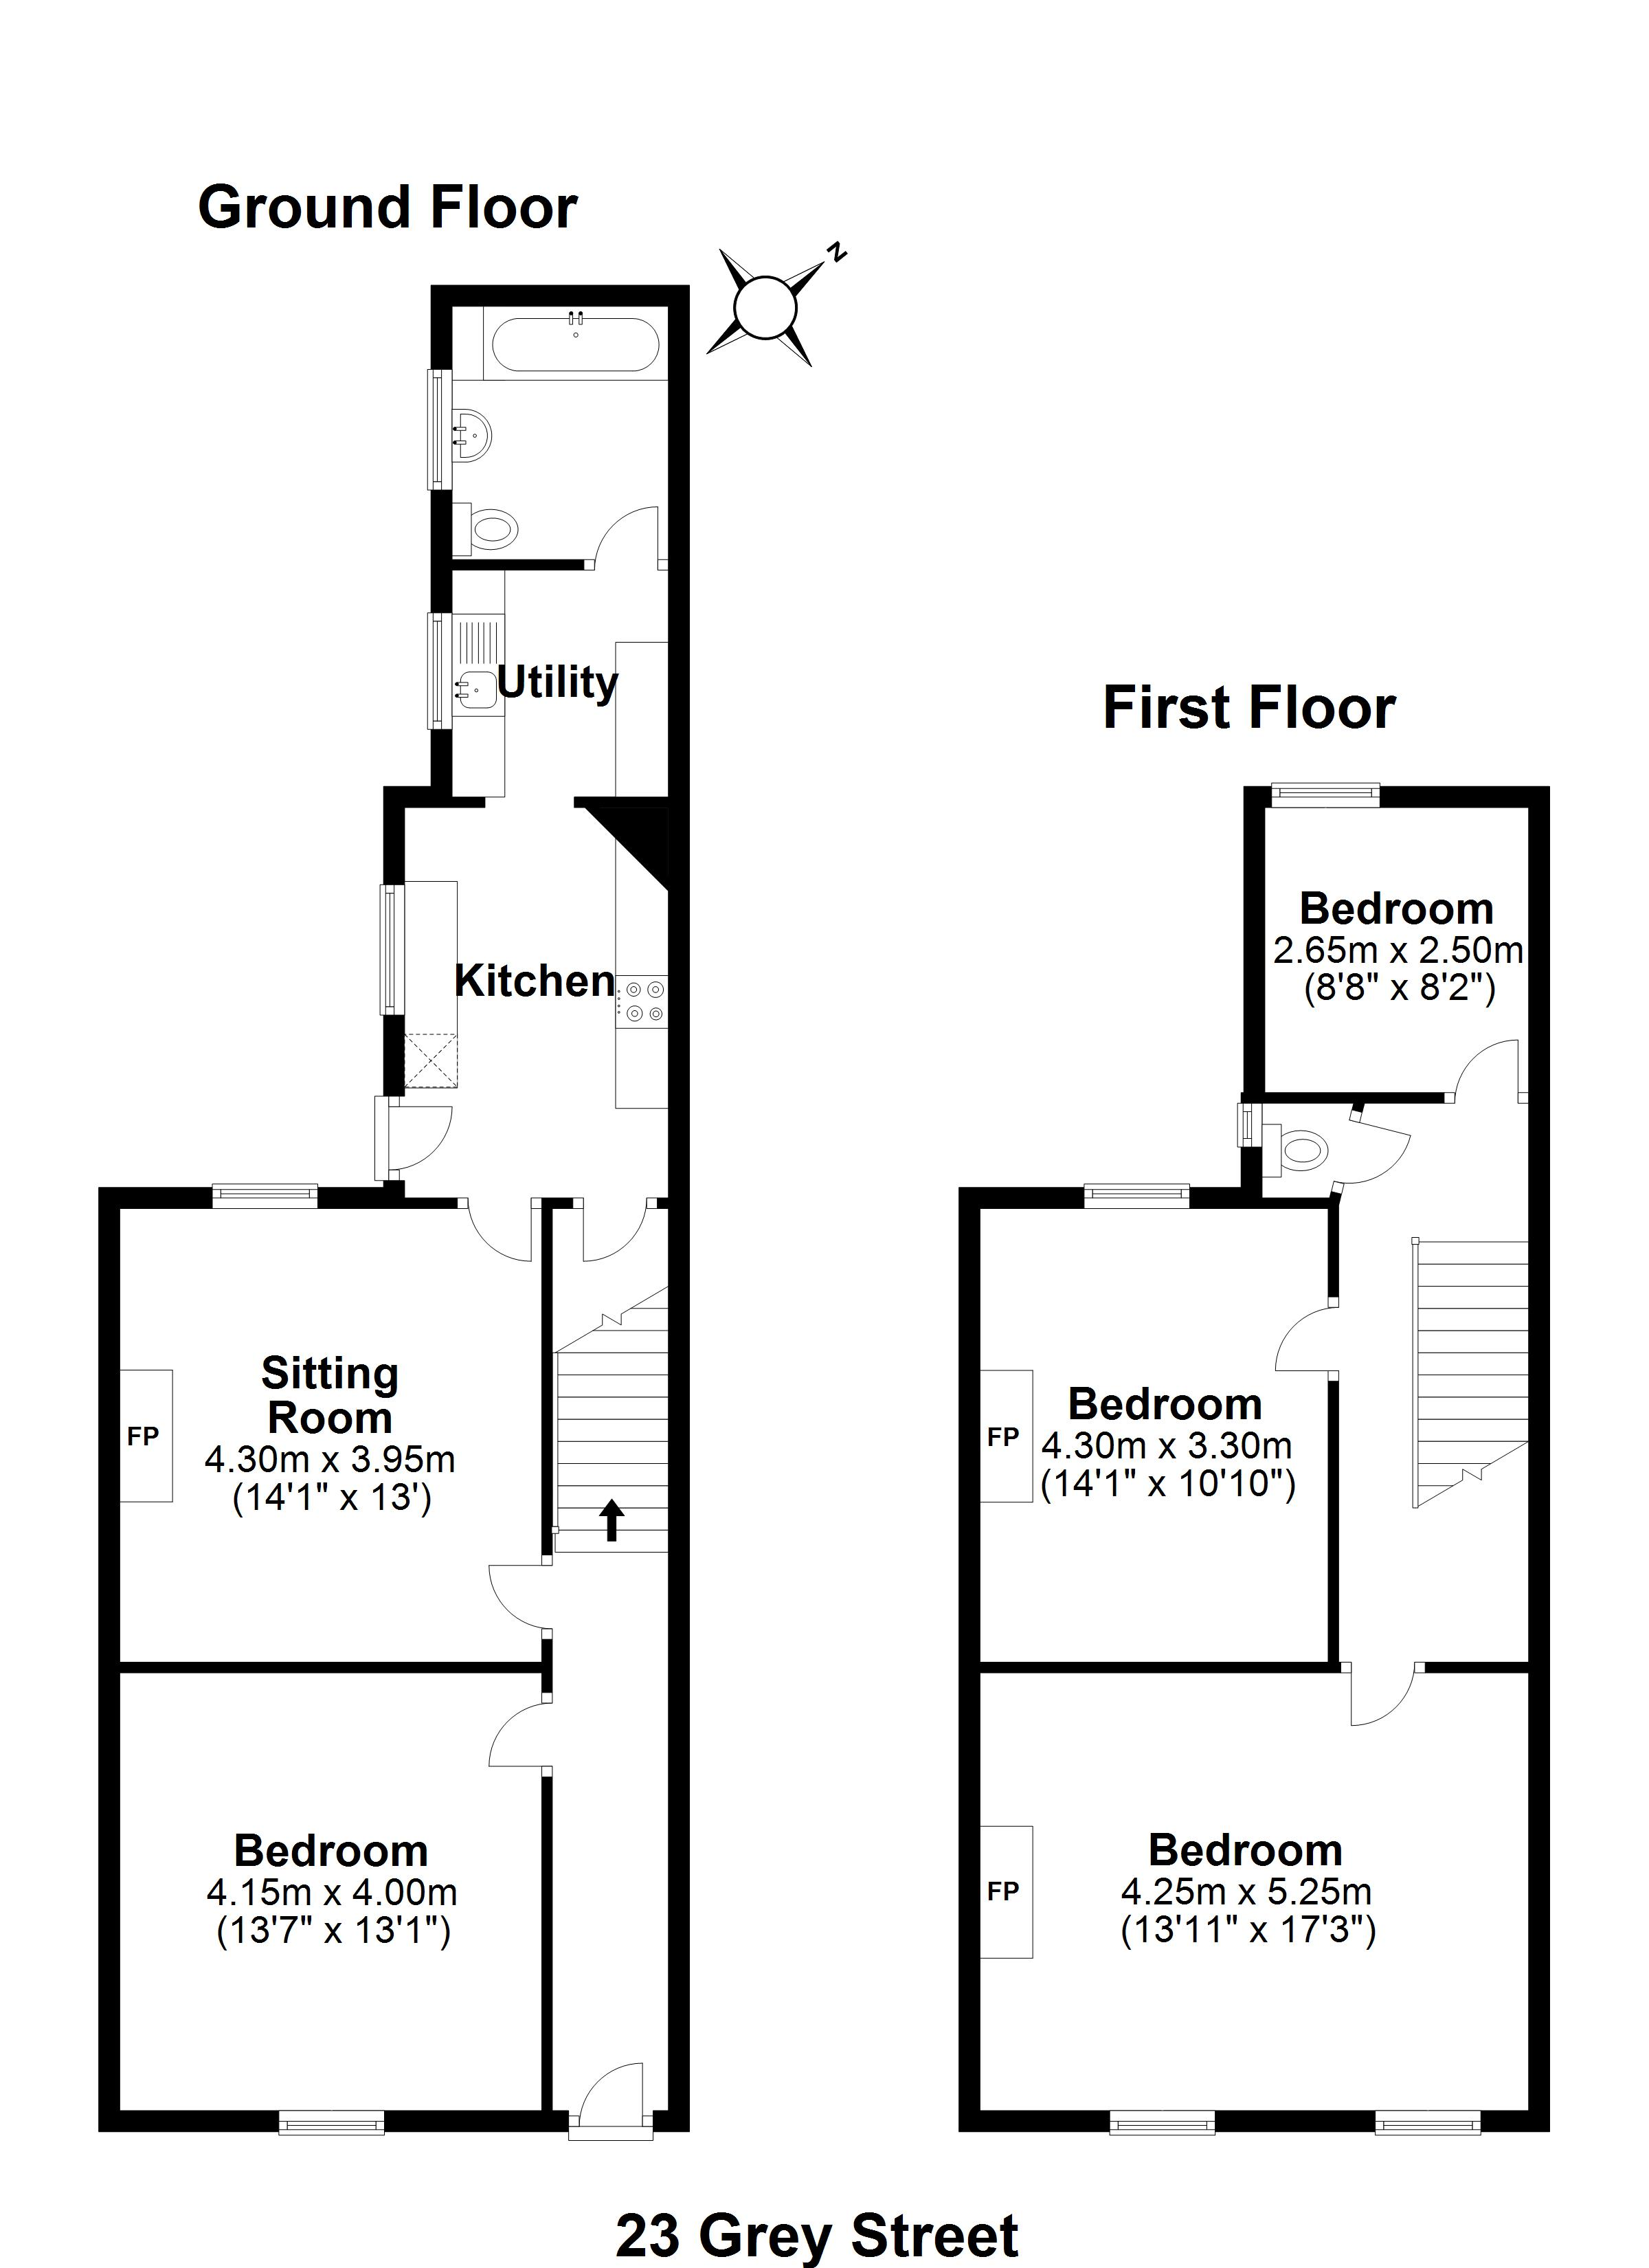 23 Grey St - PLAN